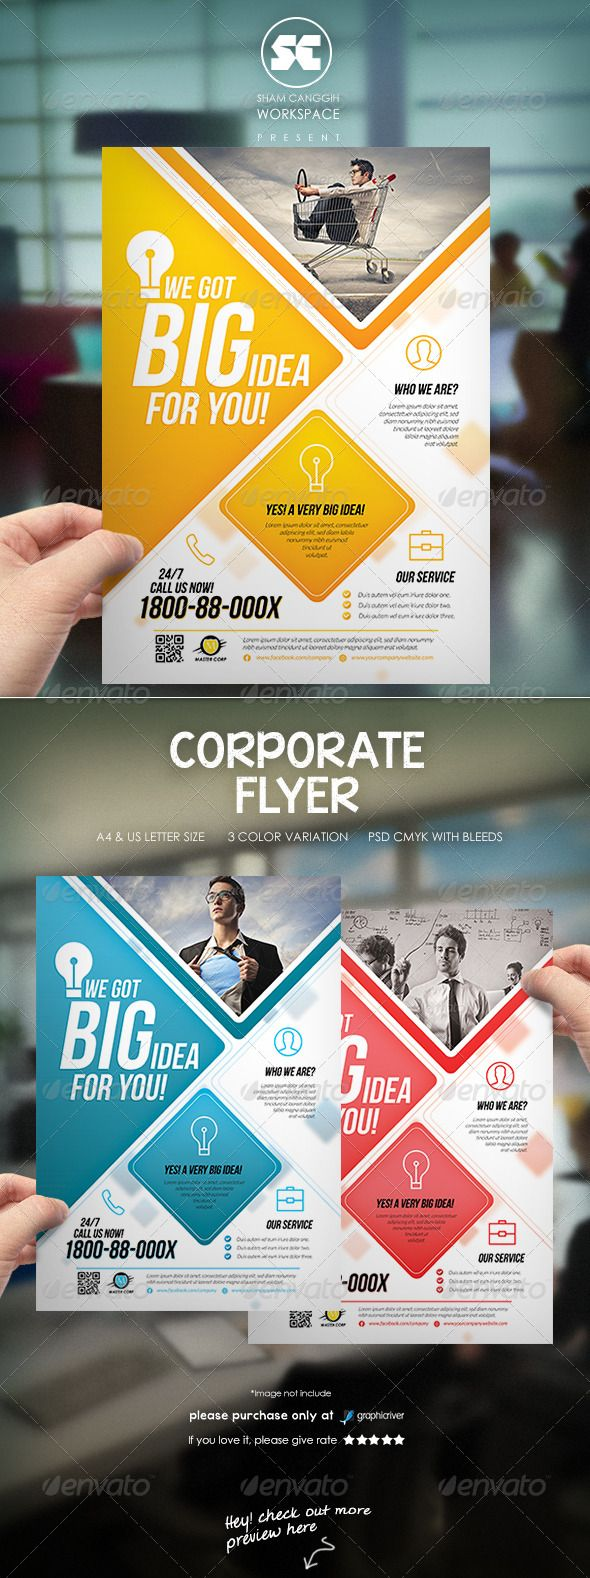 Modern Corporate Flyer / Magazine Ads ... ad, advert, advertisement, agent, blue, brochure, business, buy, company, corporate, creative, identity, layout, magazine, owner, pamphlet, photoshop, poster, profit, real estate, red, square, style, template, tile, triangle, yellow